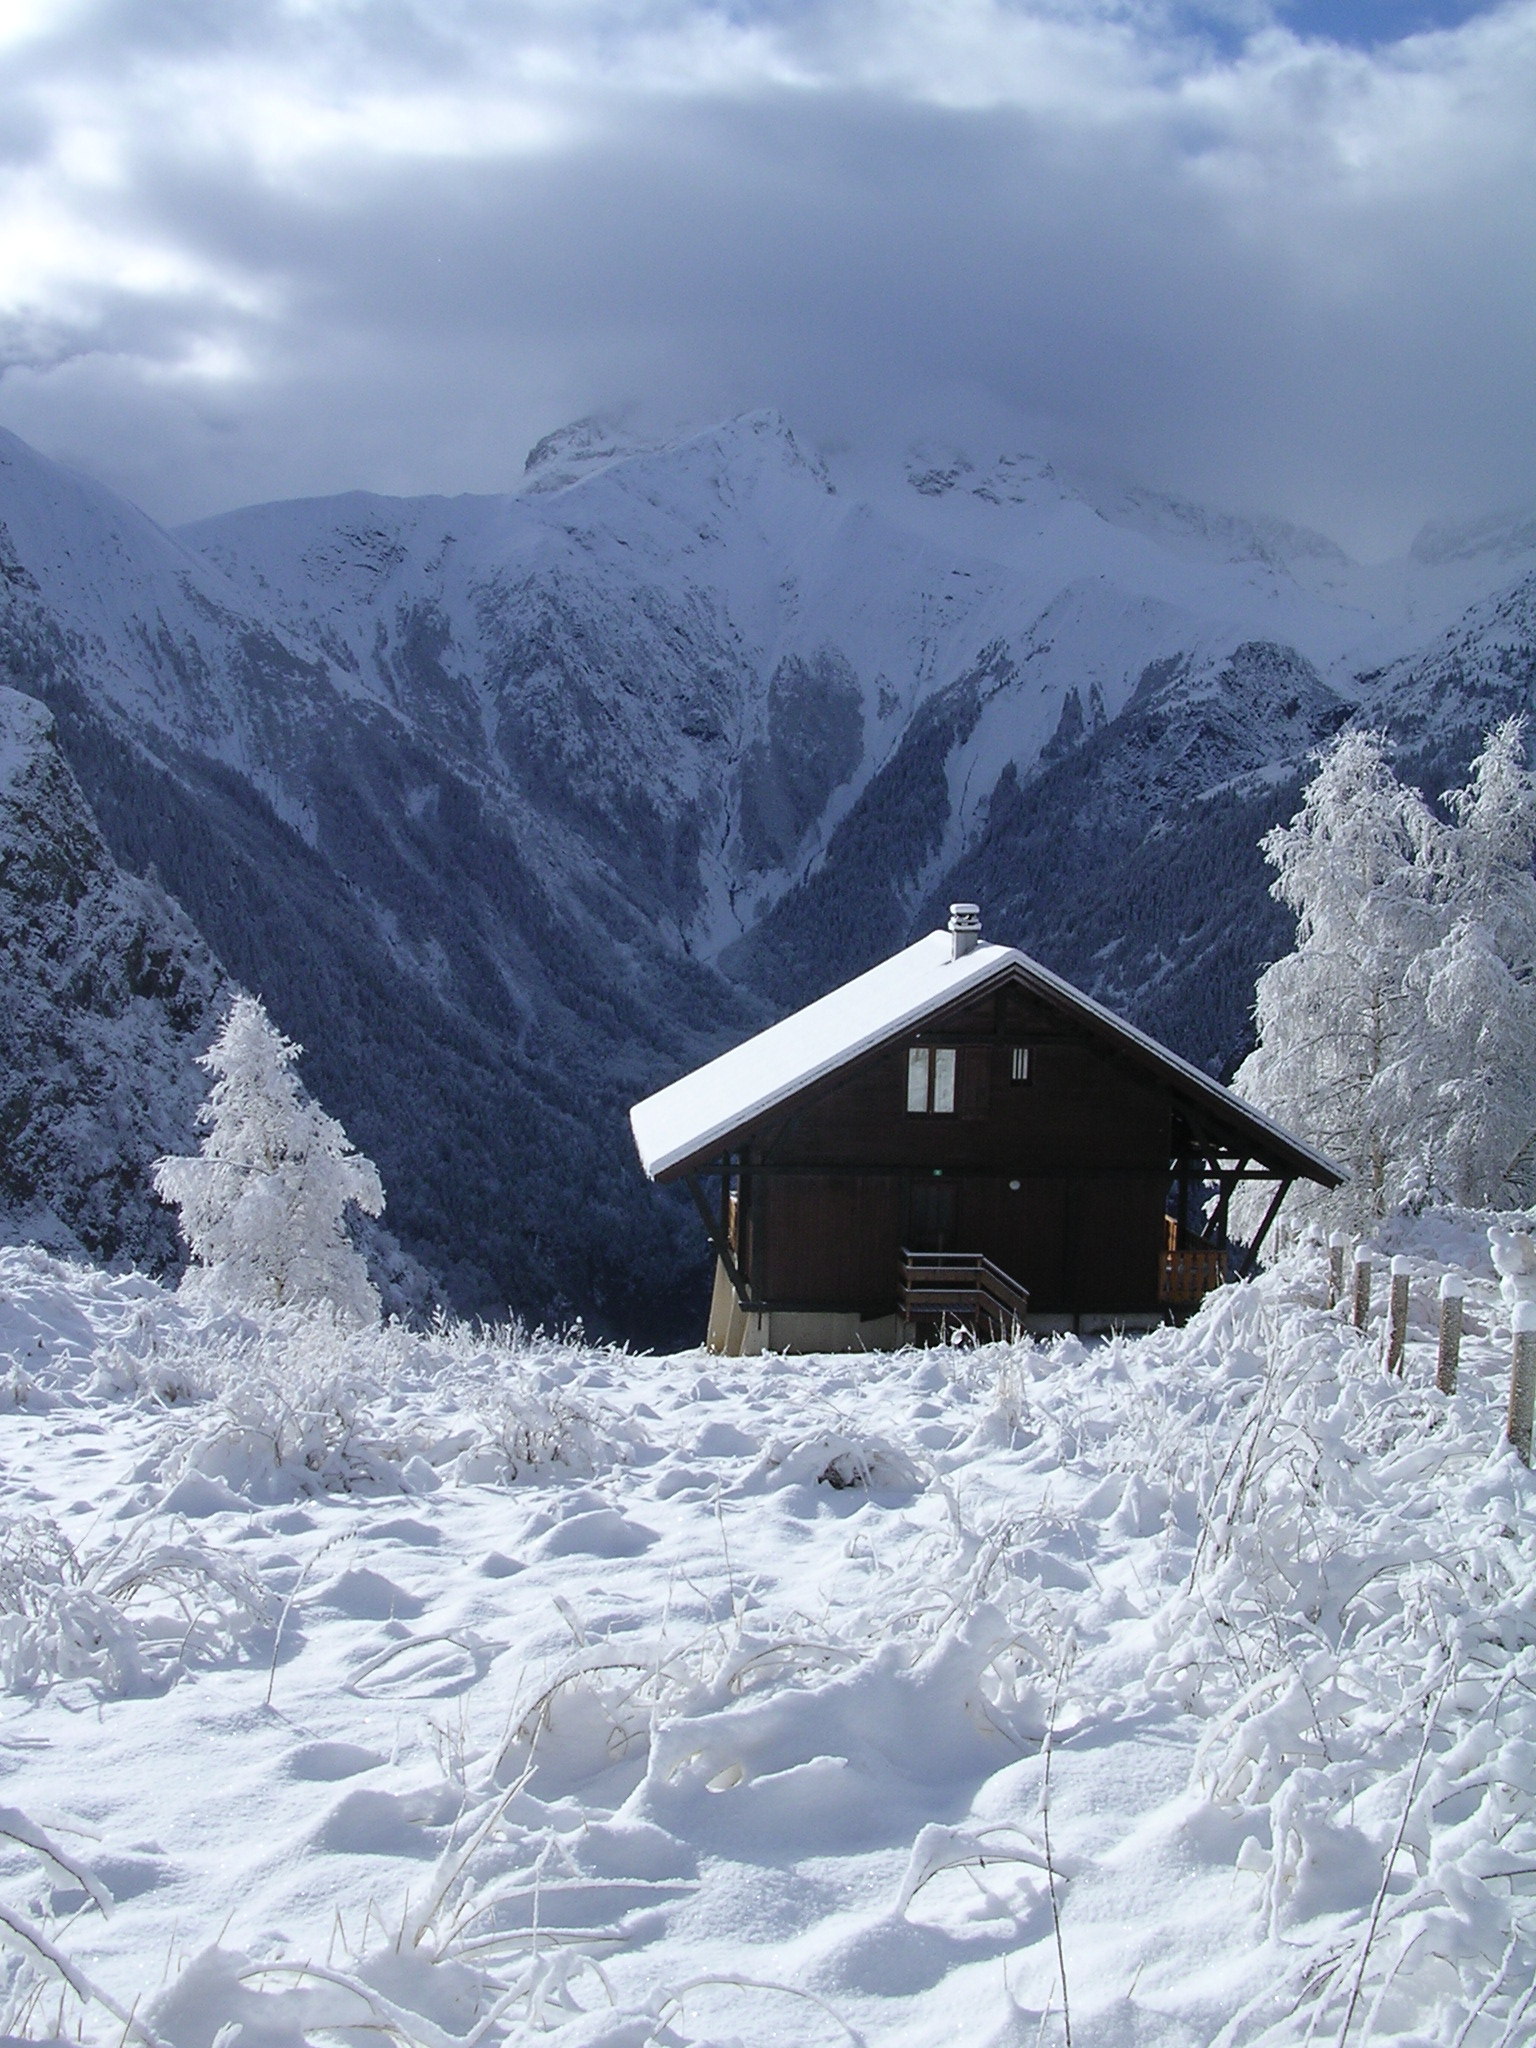 Quality accommodation for your Chamonix adventure